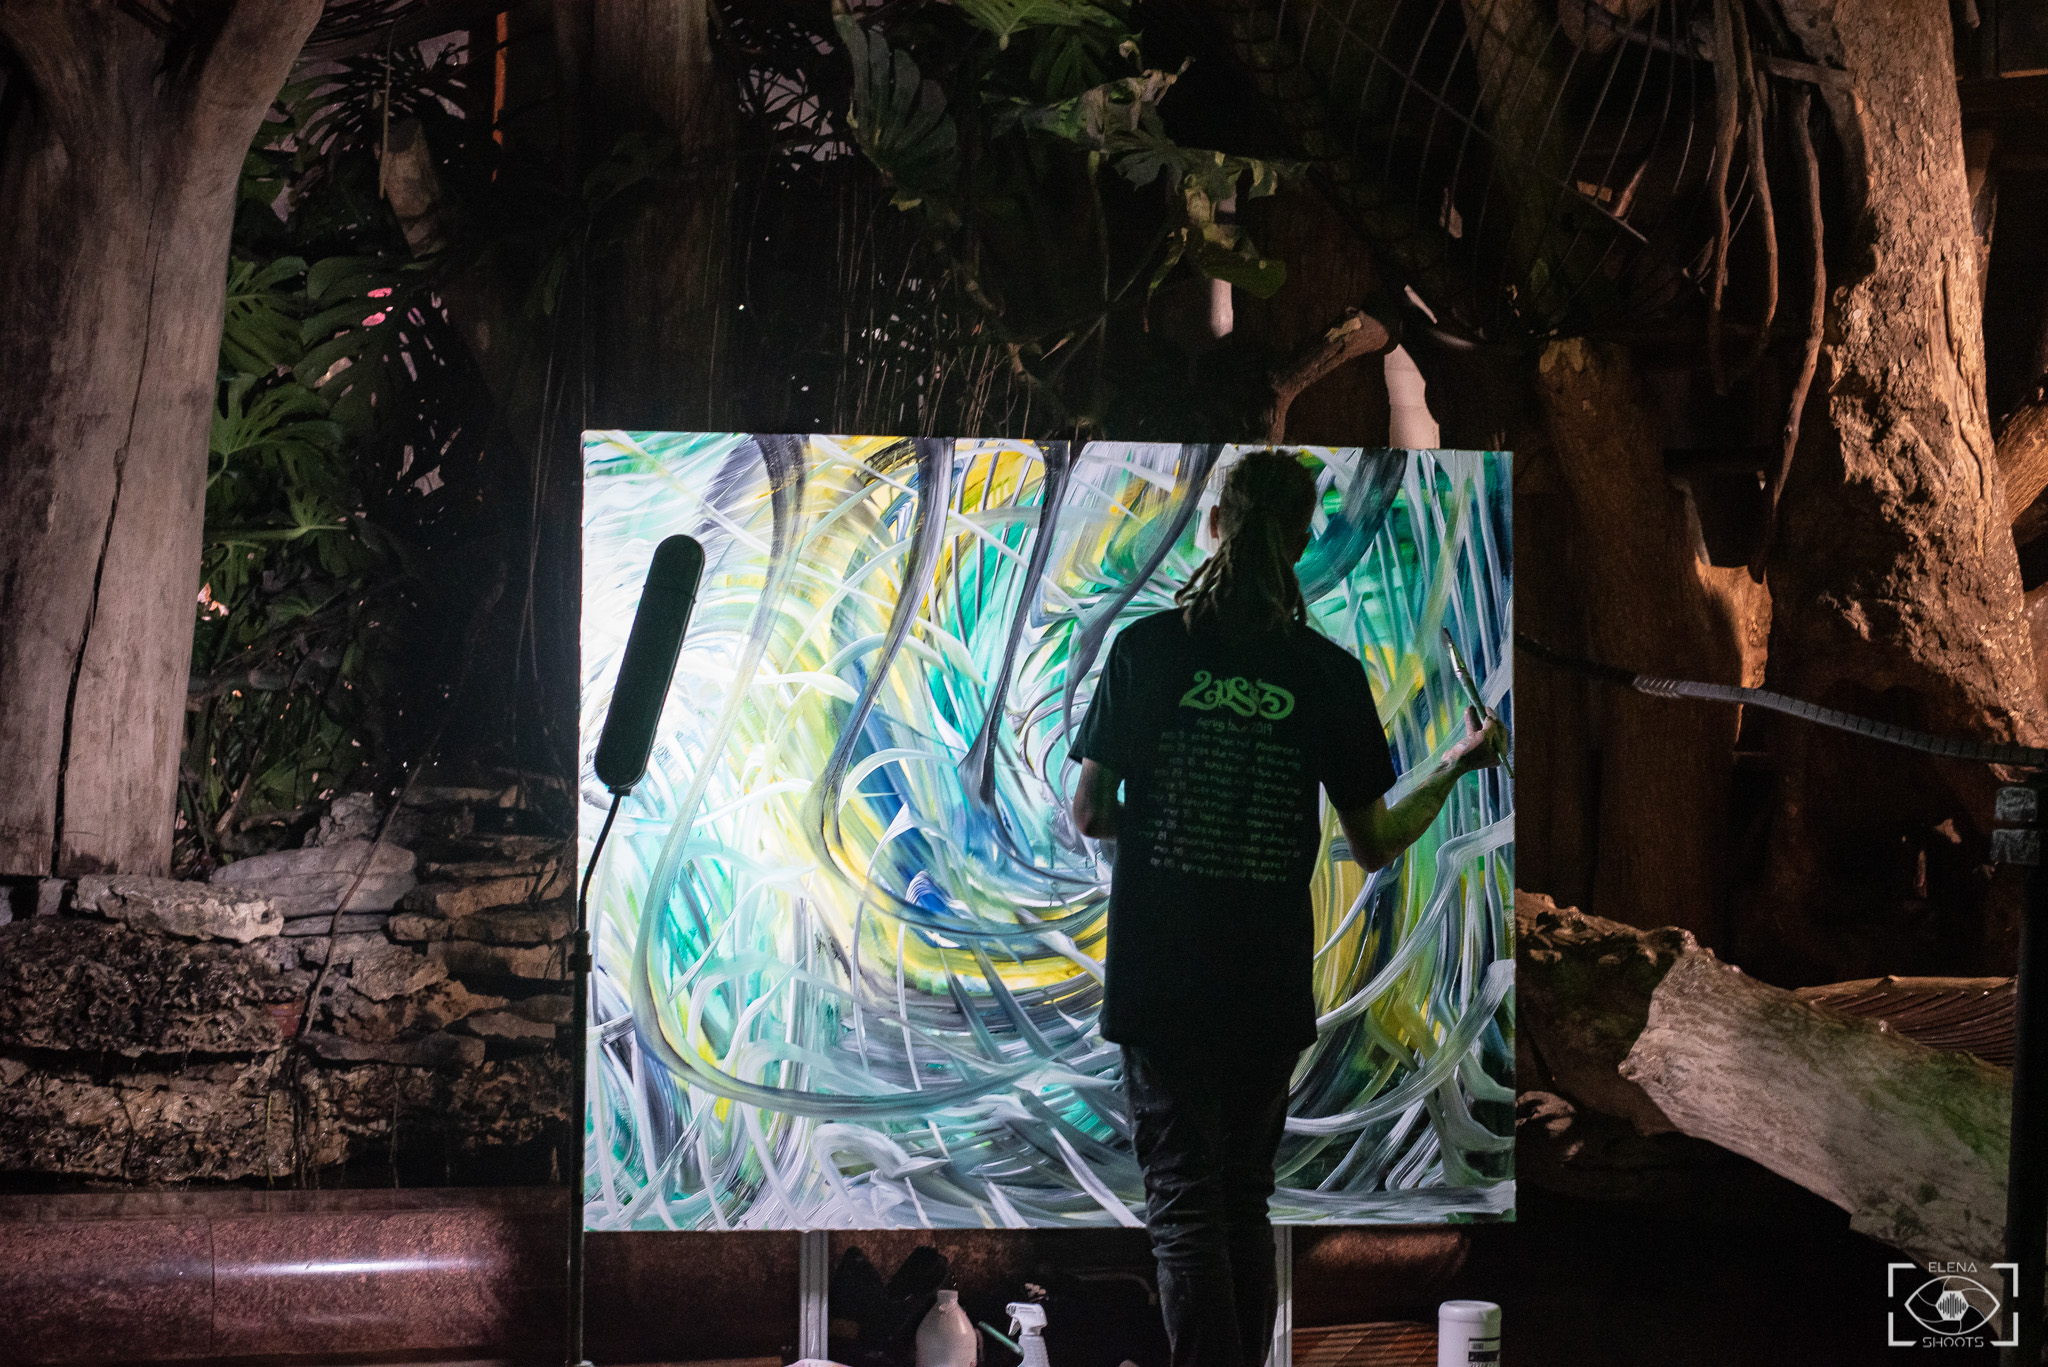 Local artist Gecko live painting in the Whale Room